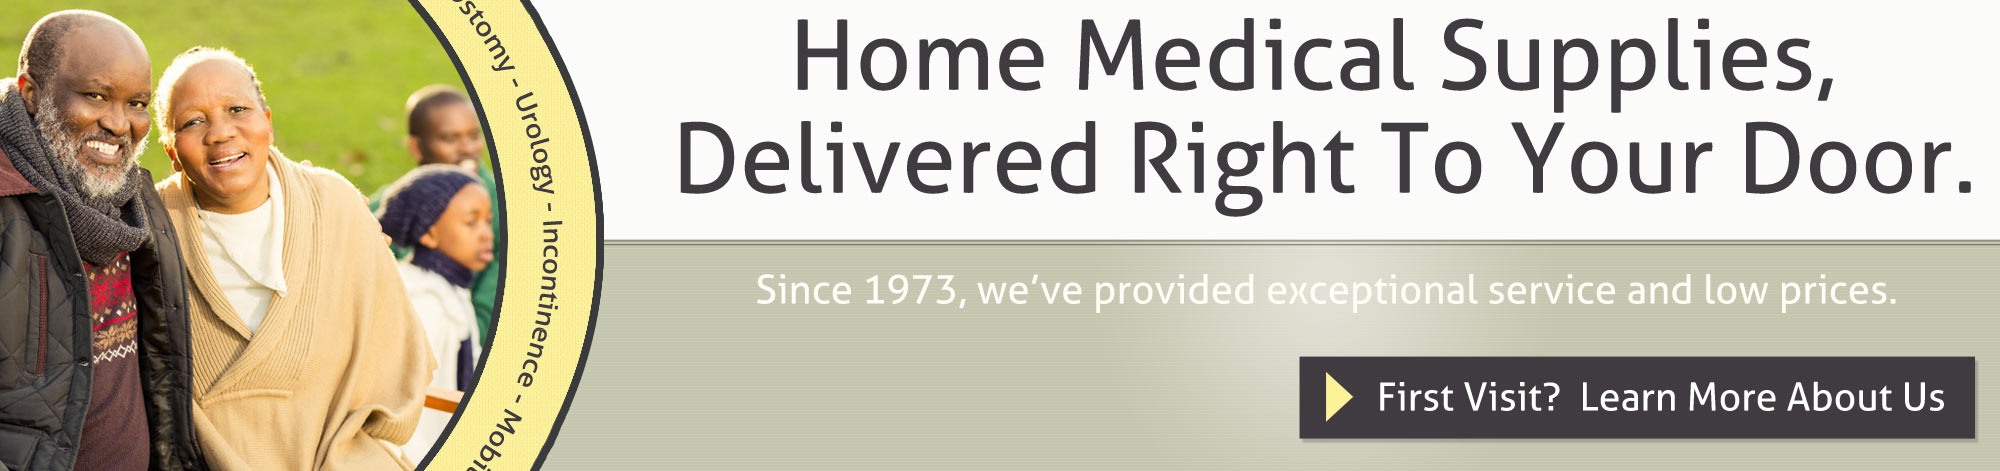 STL Medical Supply - Buy Home Medical Supplies Online